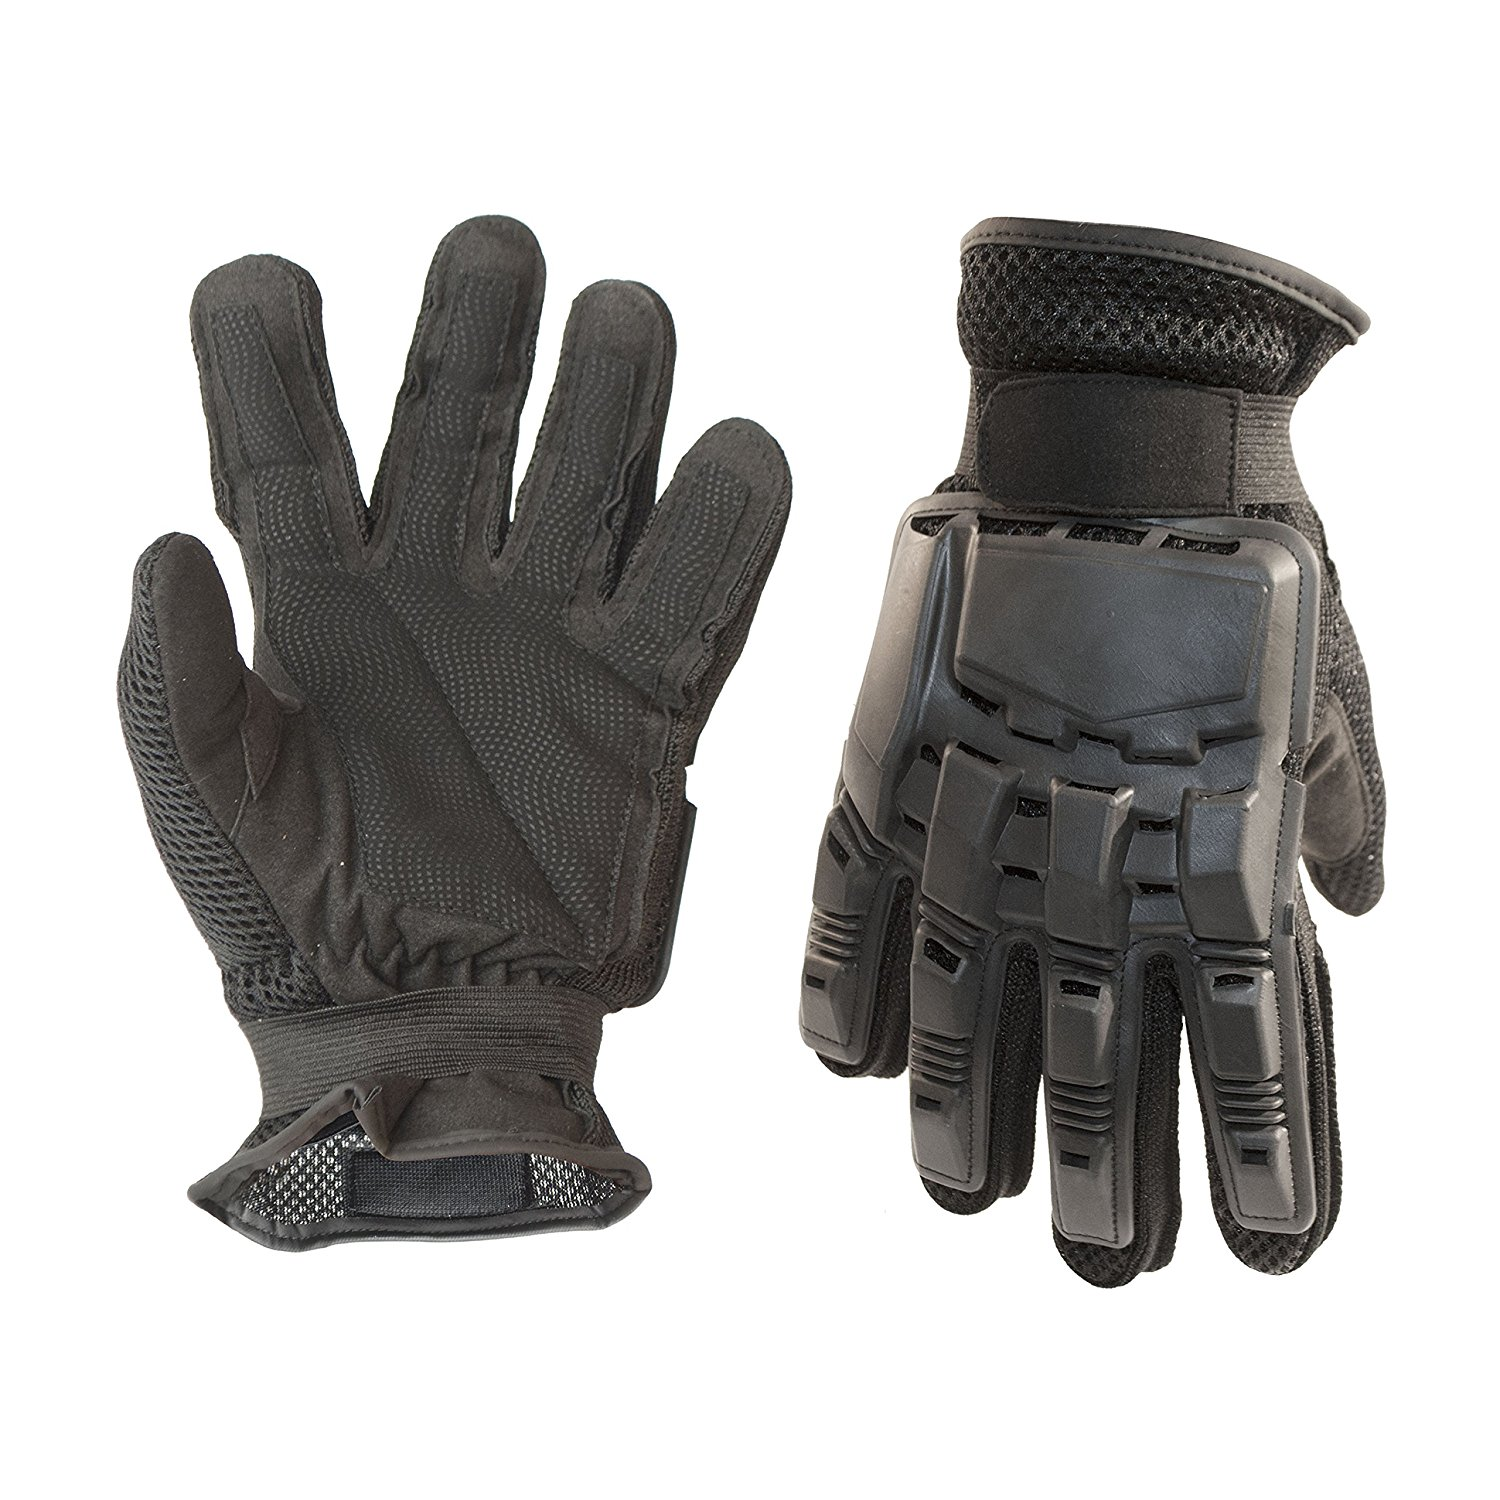 PBFFG43L Large Paintball Airsoft Outdoor Sports Military Tactical Gloves